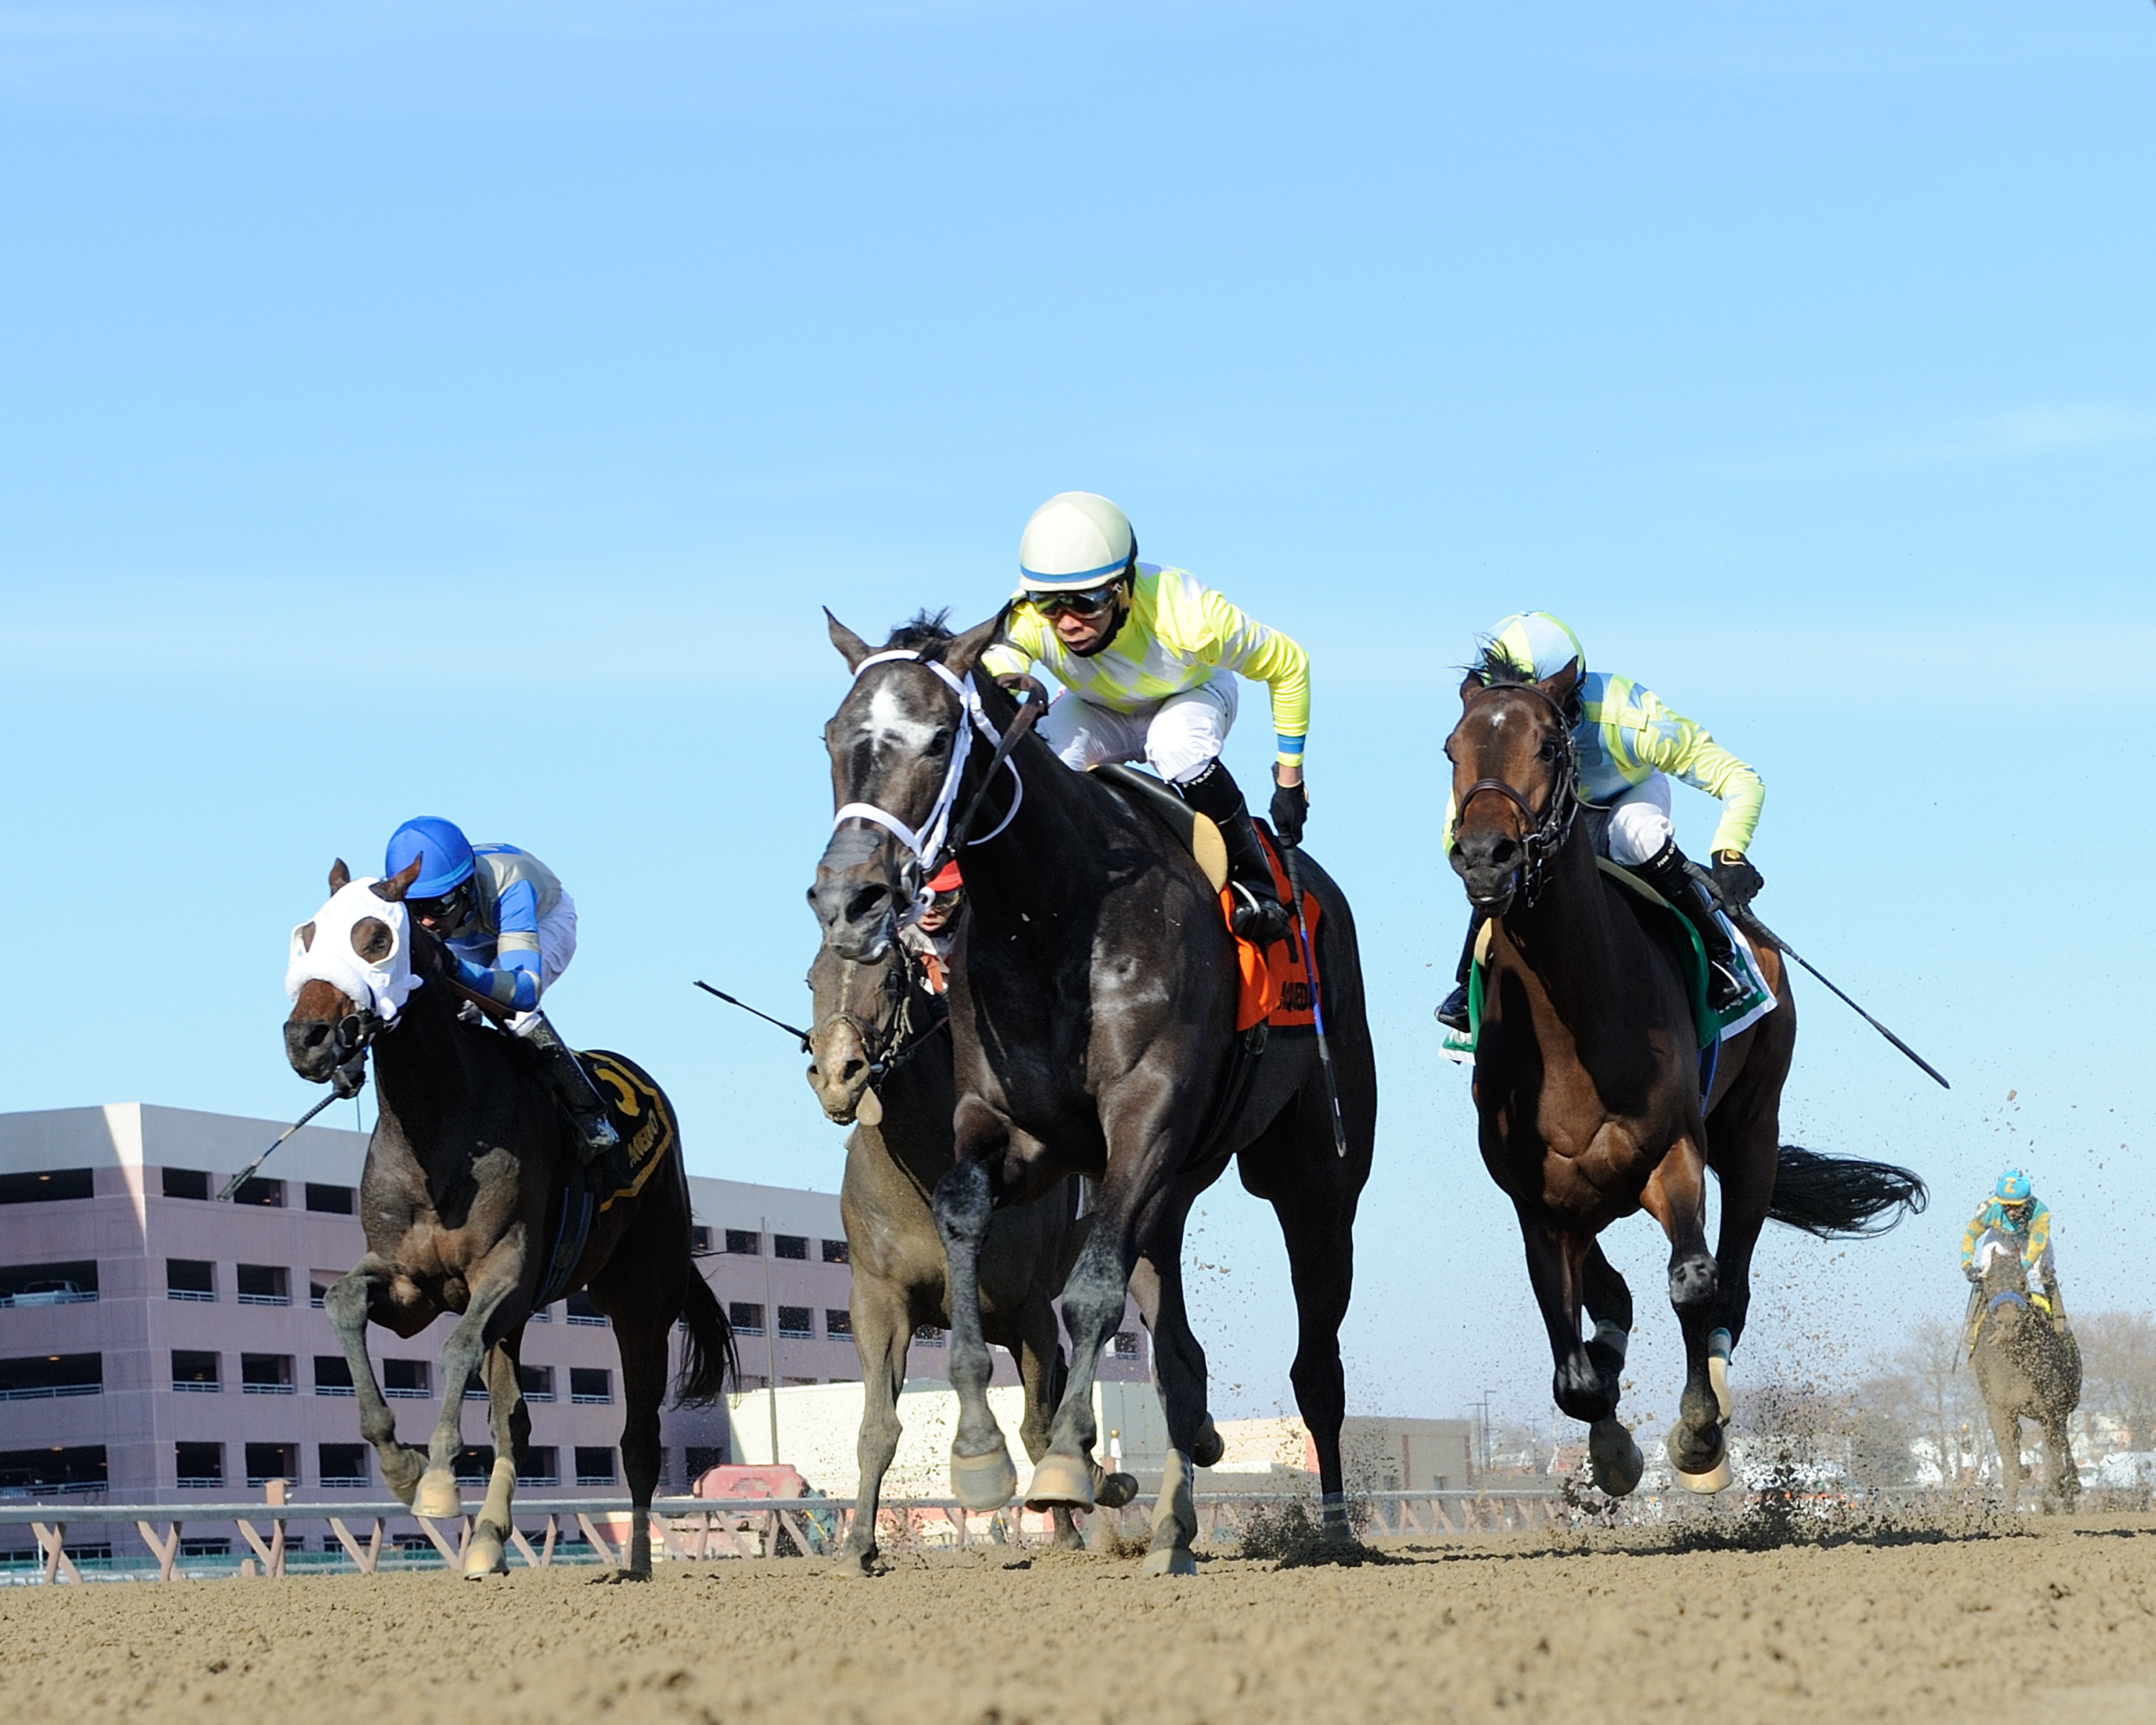 In this Jan. 30, 2016, photo provided by the New York Racing Association, Sunny Ridge (7), center, is shown winning the Withers Stakes at Aqueduct Raceway in New York. Sunny Ridge is expected to run in Saturday's March 5, 2016, $400,000 Gotham Stakes at A